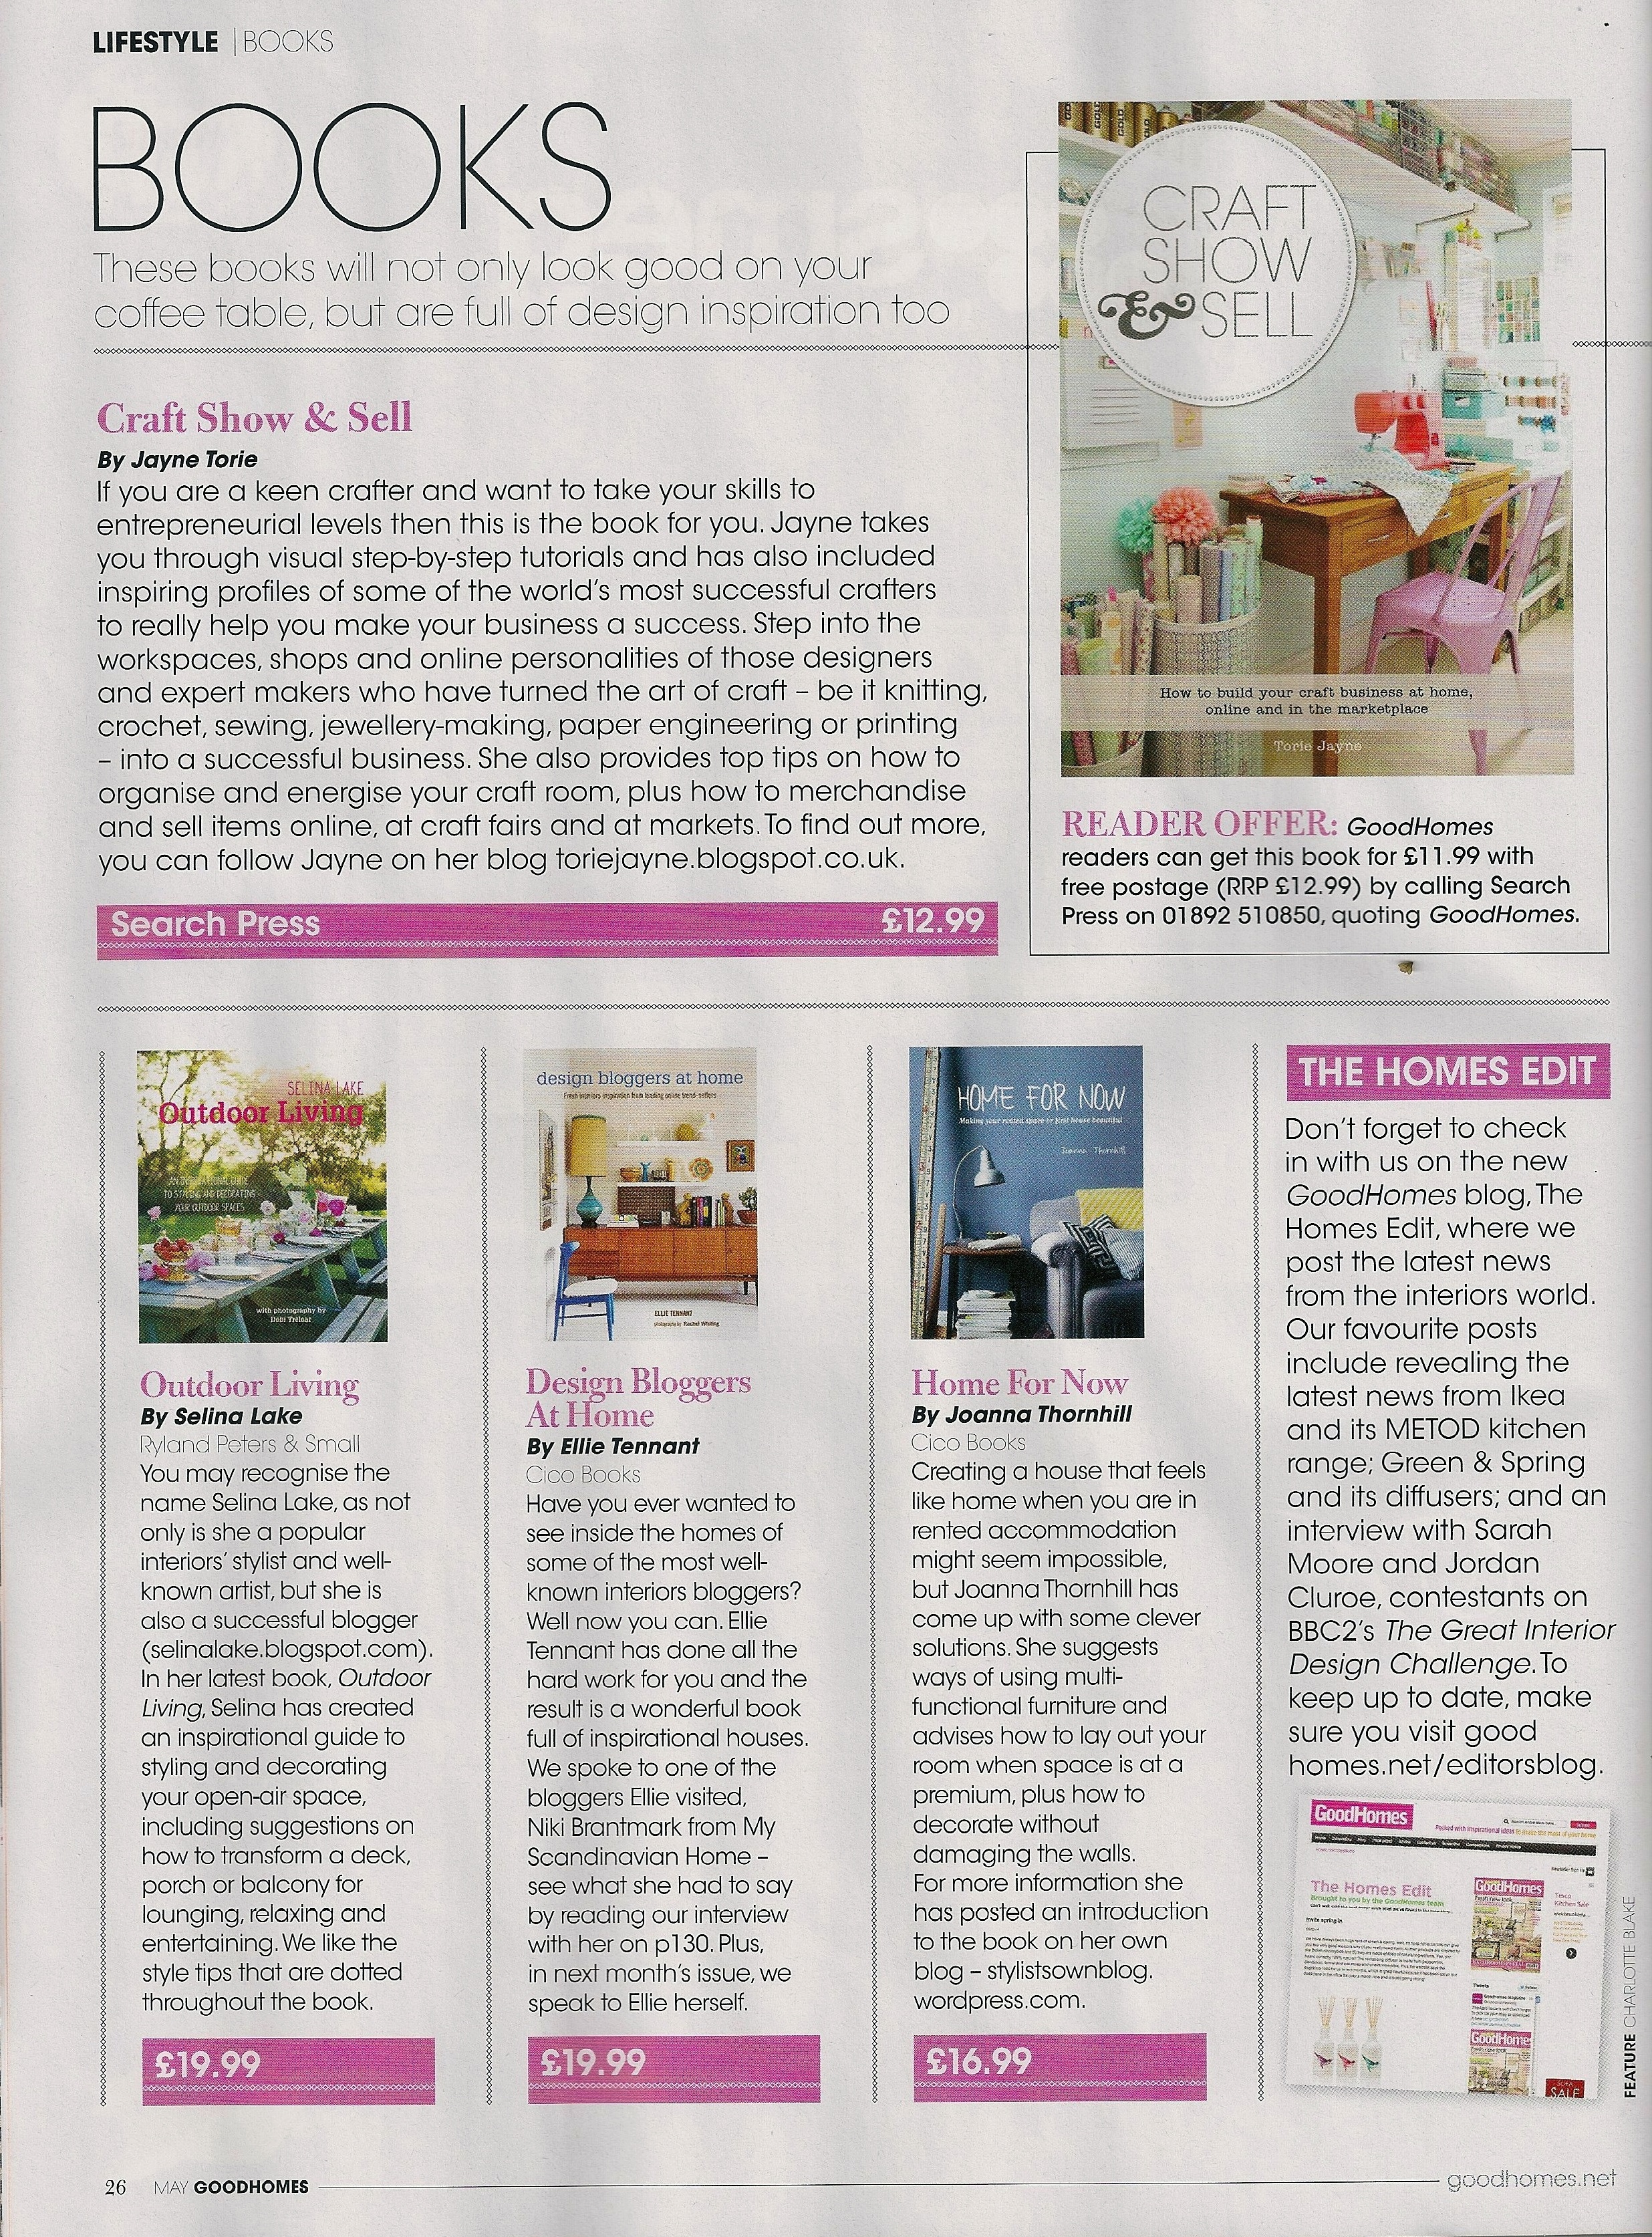 Good Homes Book Review page Home for Now by Joanna Thornhill.jpg